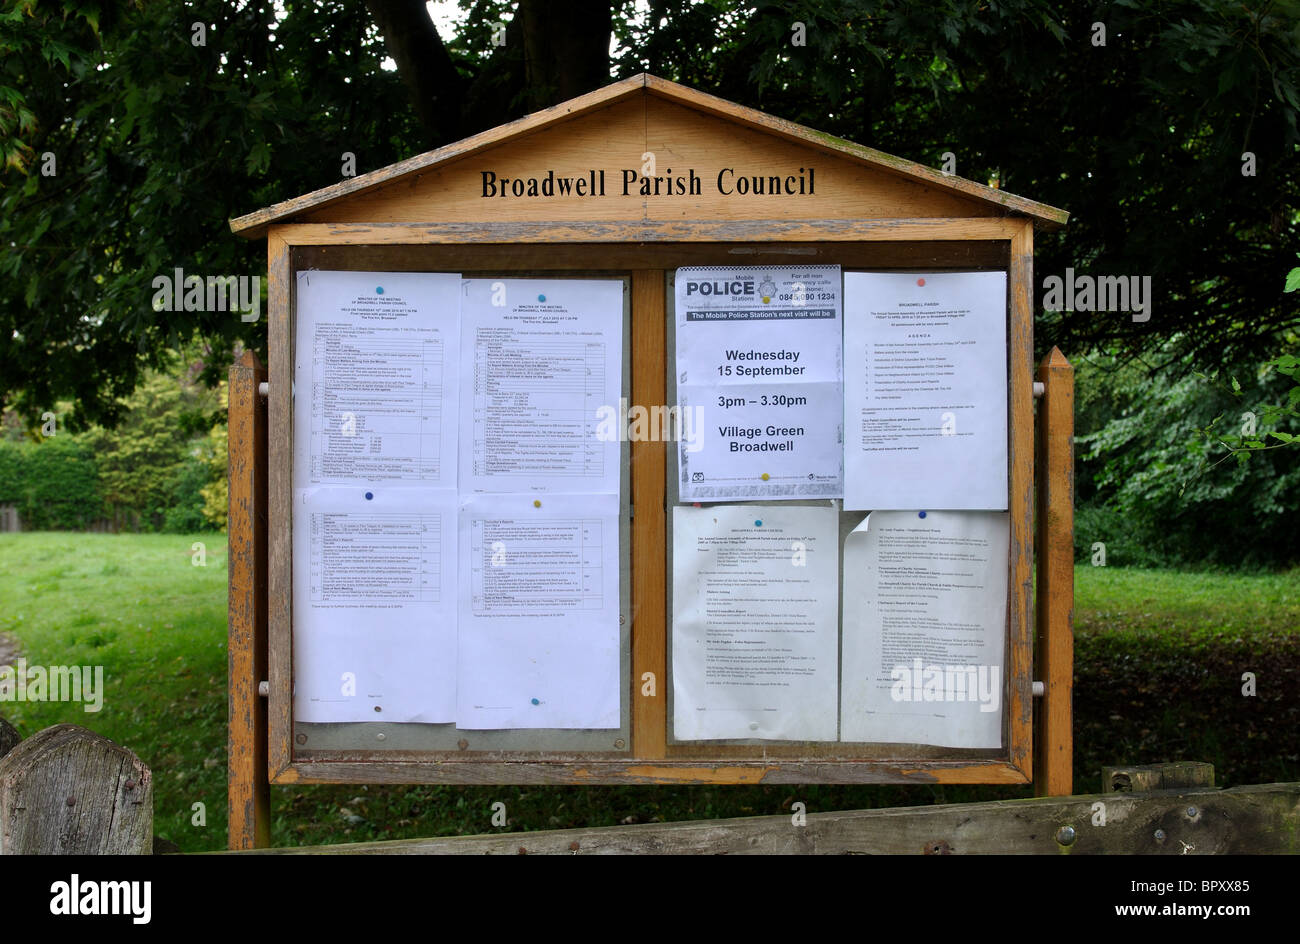 Public notices board stock photos public notices board stock images alamy - Garage moretton communay ...